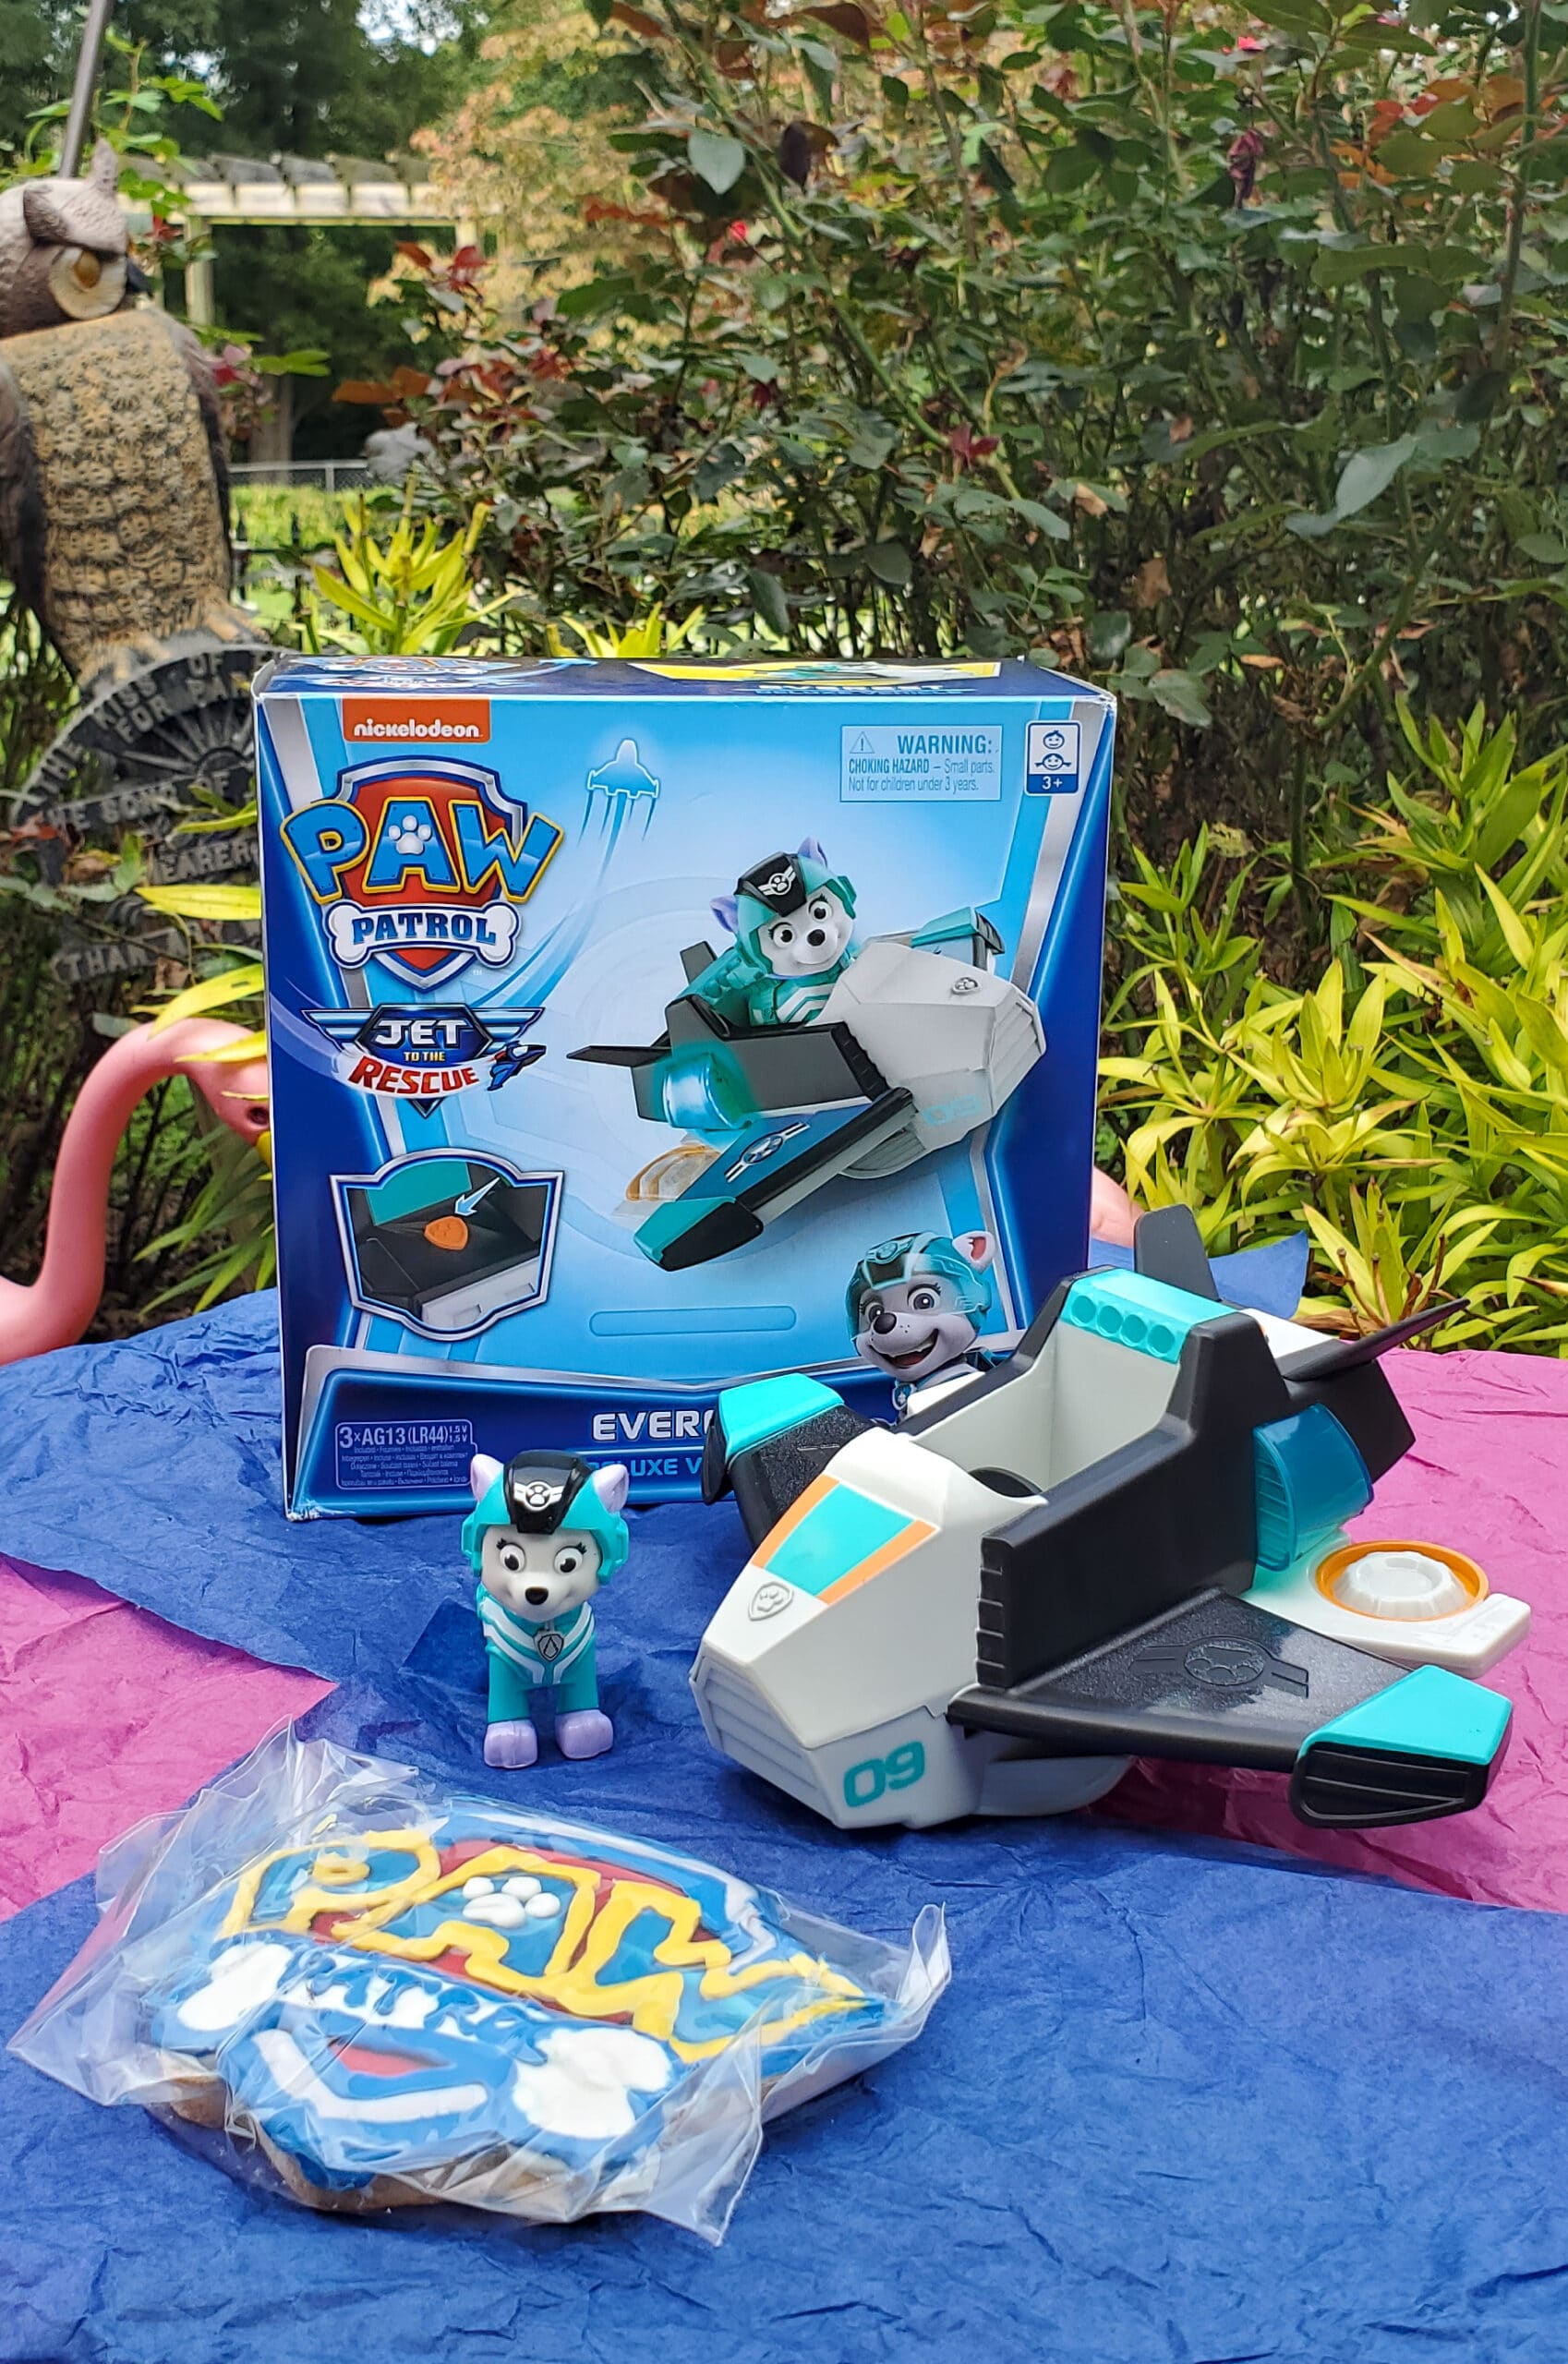 PAW Patrol: Jet to the Rescue Everest Deluxe Vehicle. Get ready for high-flying adventures with the PAW Patrol pups in the brand-new DVD PAW Patrol: Jet to the Rescue. In celebration of the release of this special feature, Nickelodeon sent us a surprise box full of PAW Patrol goodies! View all of the fun new PAW Patrol: Jet to the Rescue themed toys available on my blog.